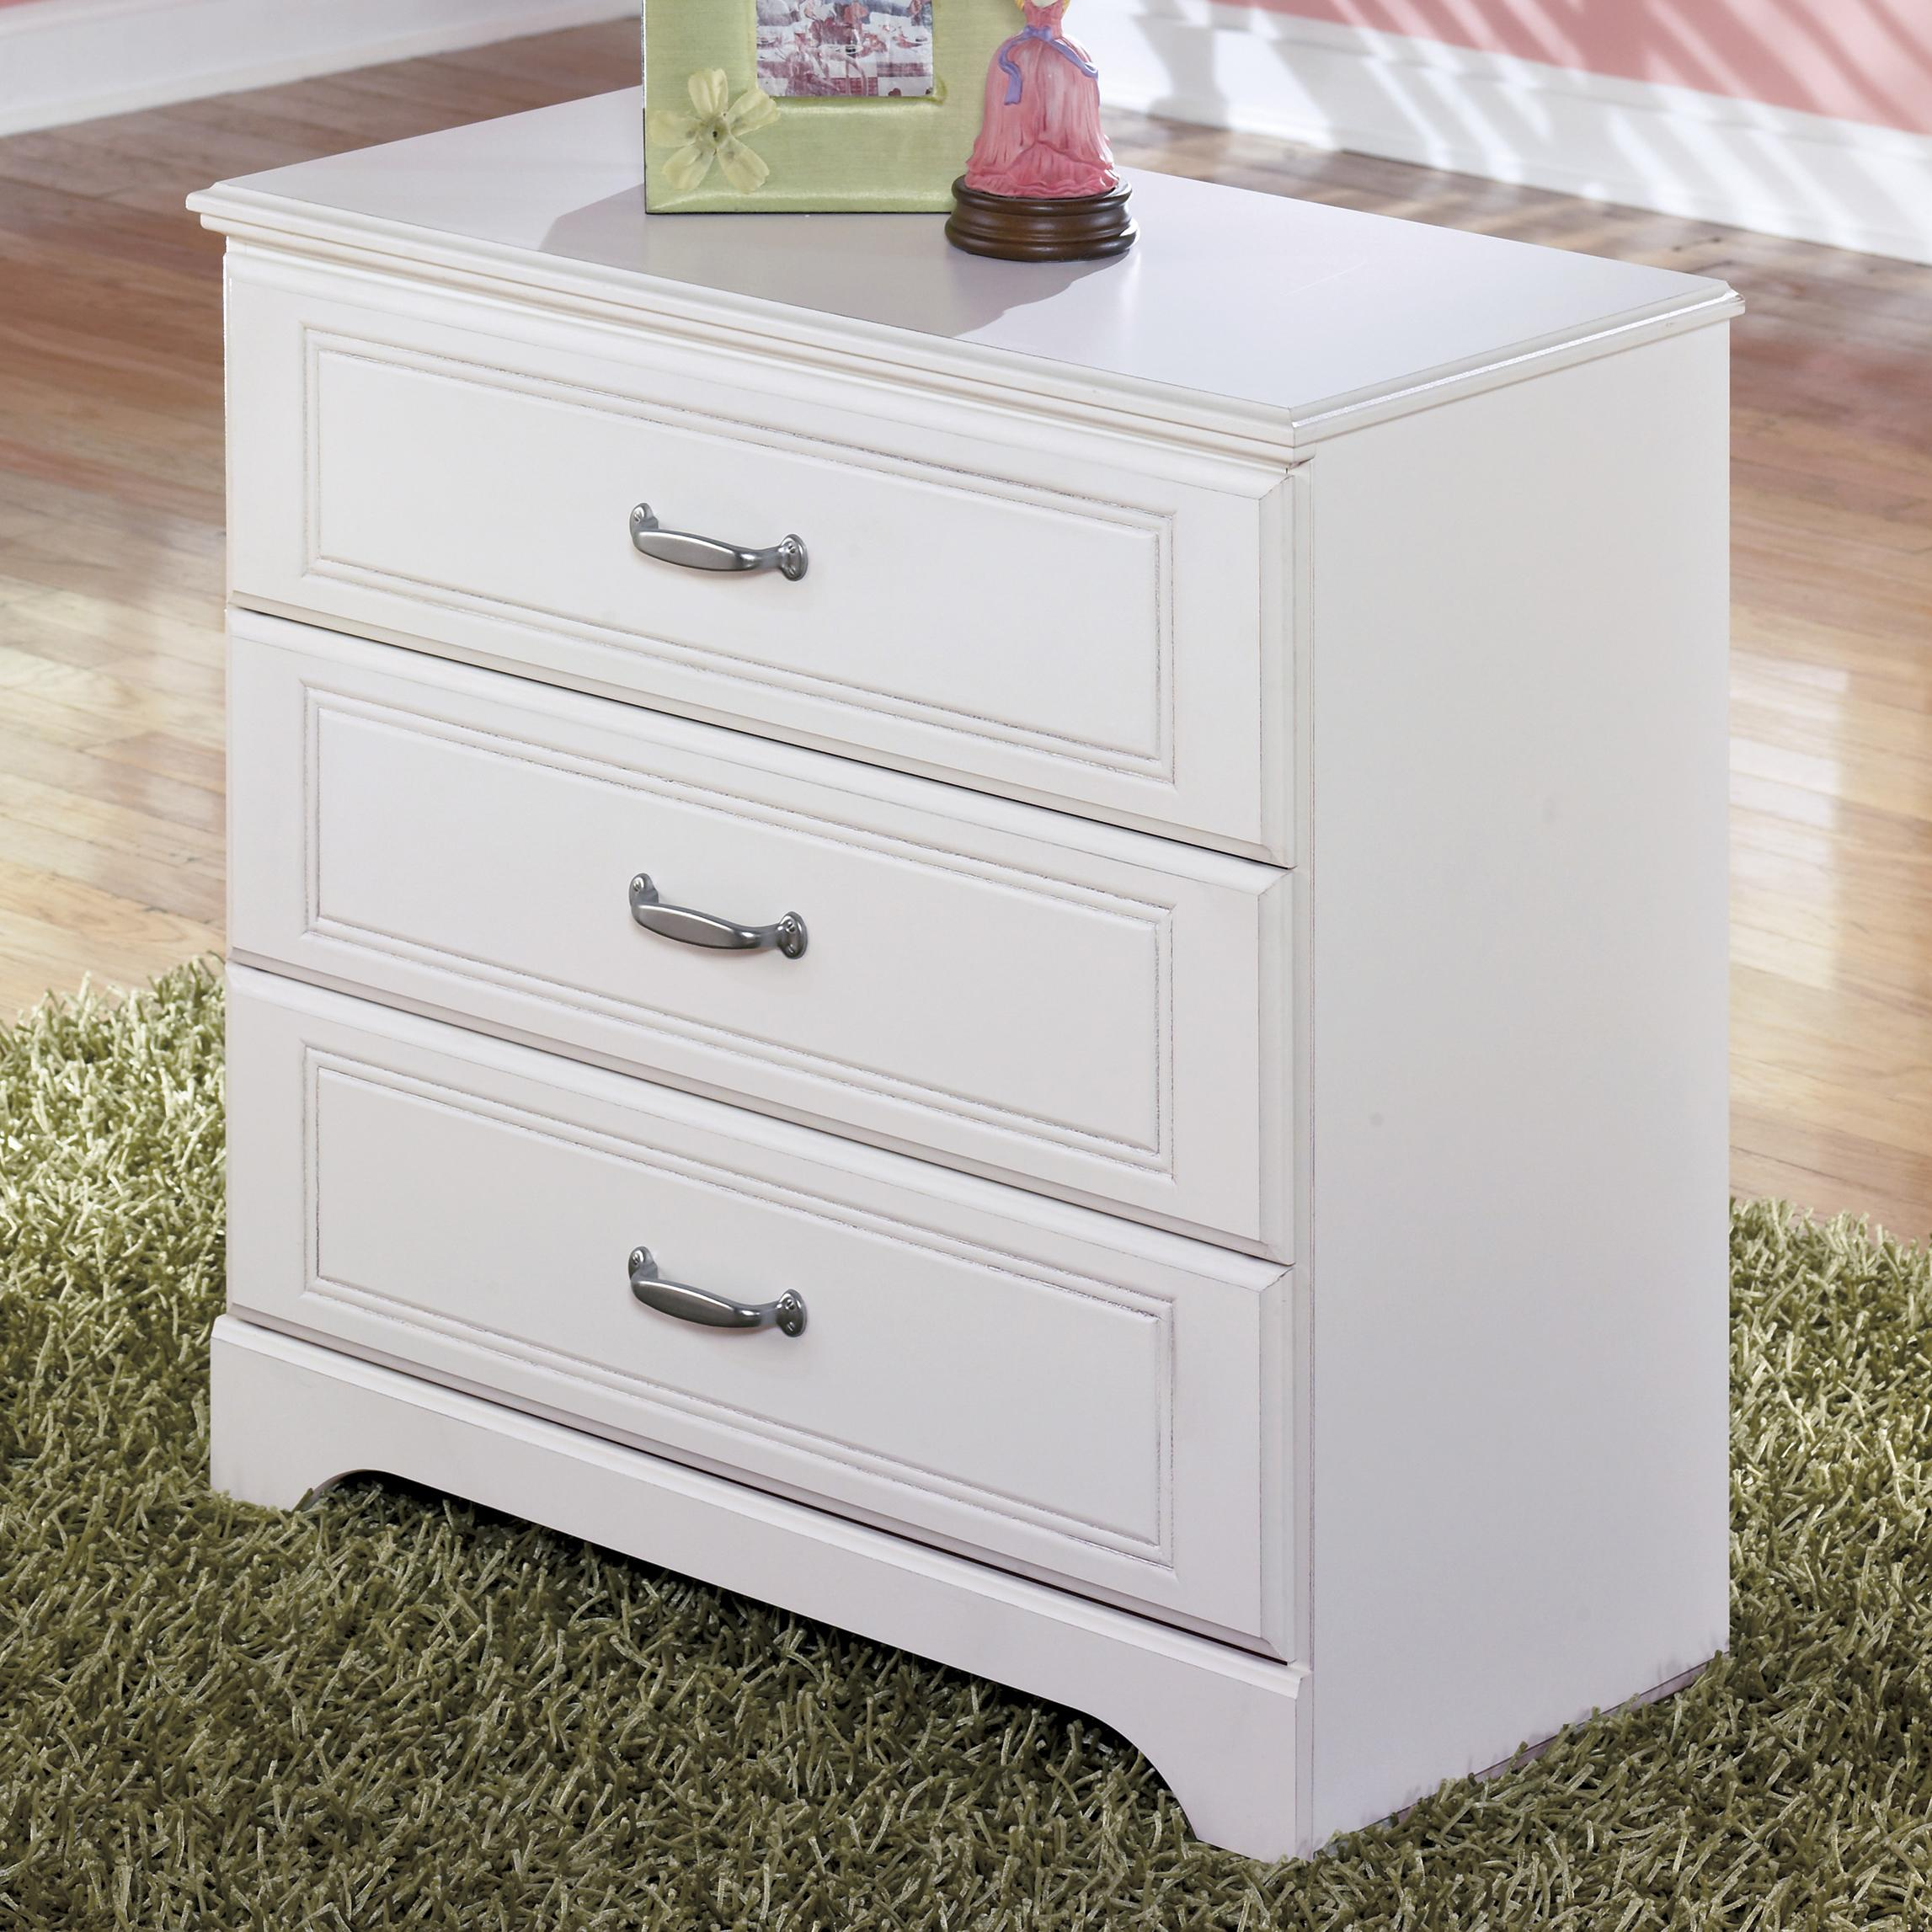 Signature Design by Ashley Lulu Loft Drawer Storage - Item Number: B102-19